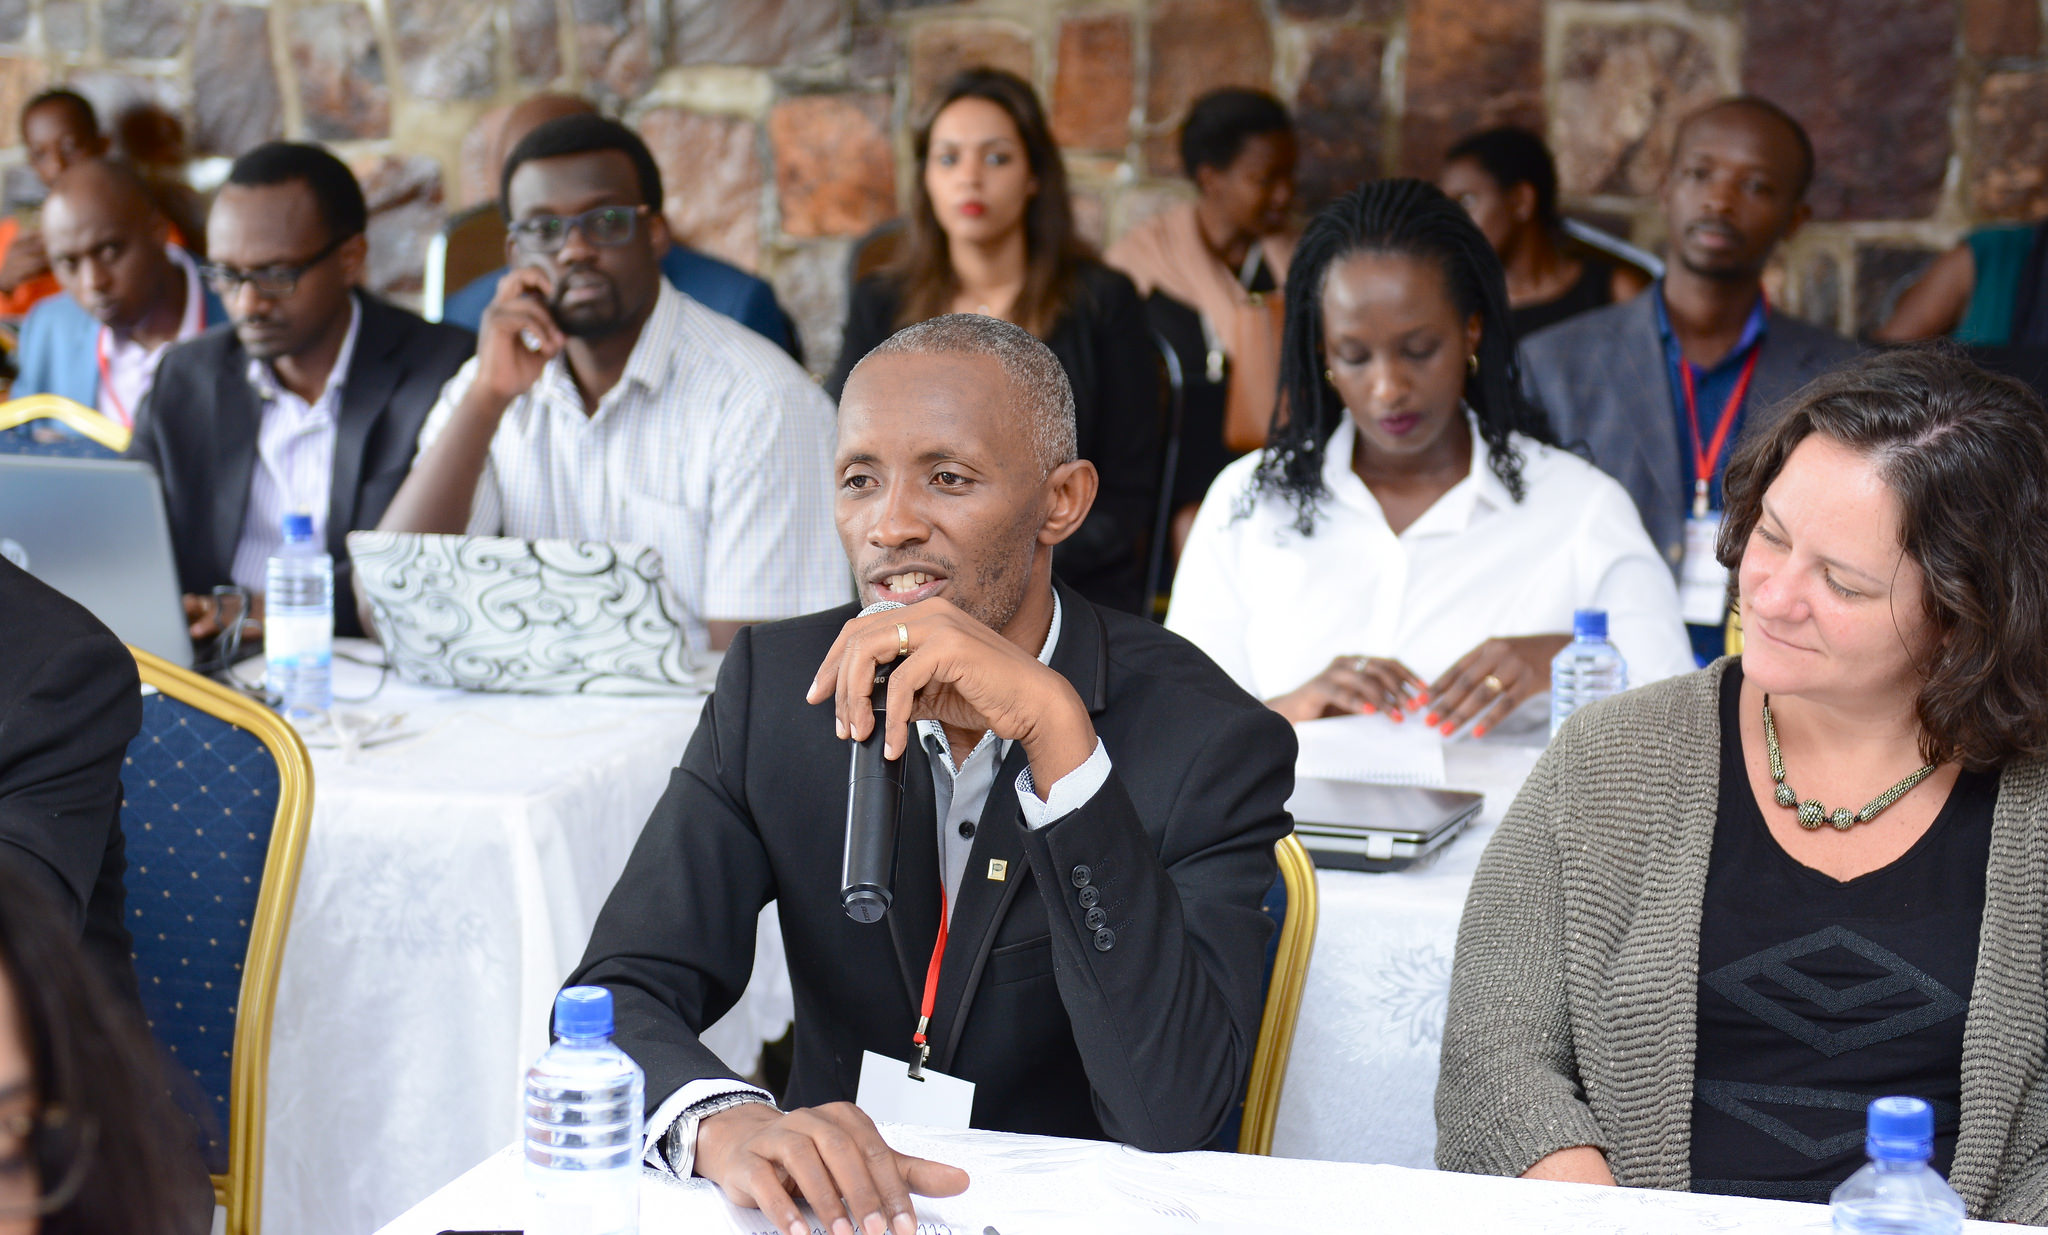 Aegis Peace Education Colloquium at the Kigali Genocide Memorial, Day Three (22 February)